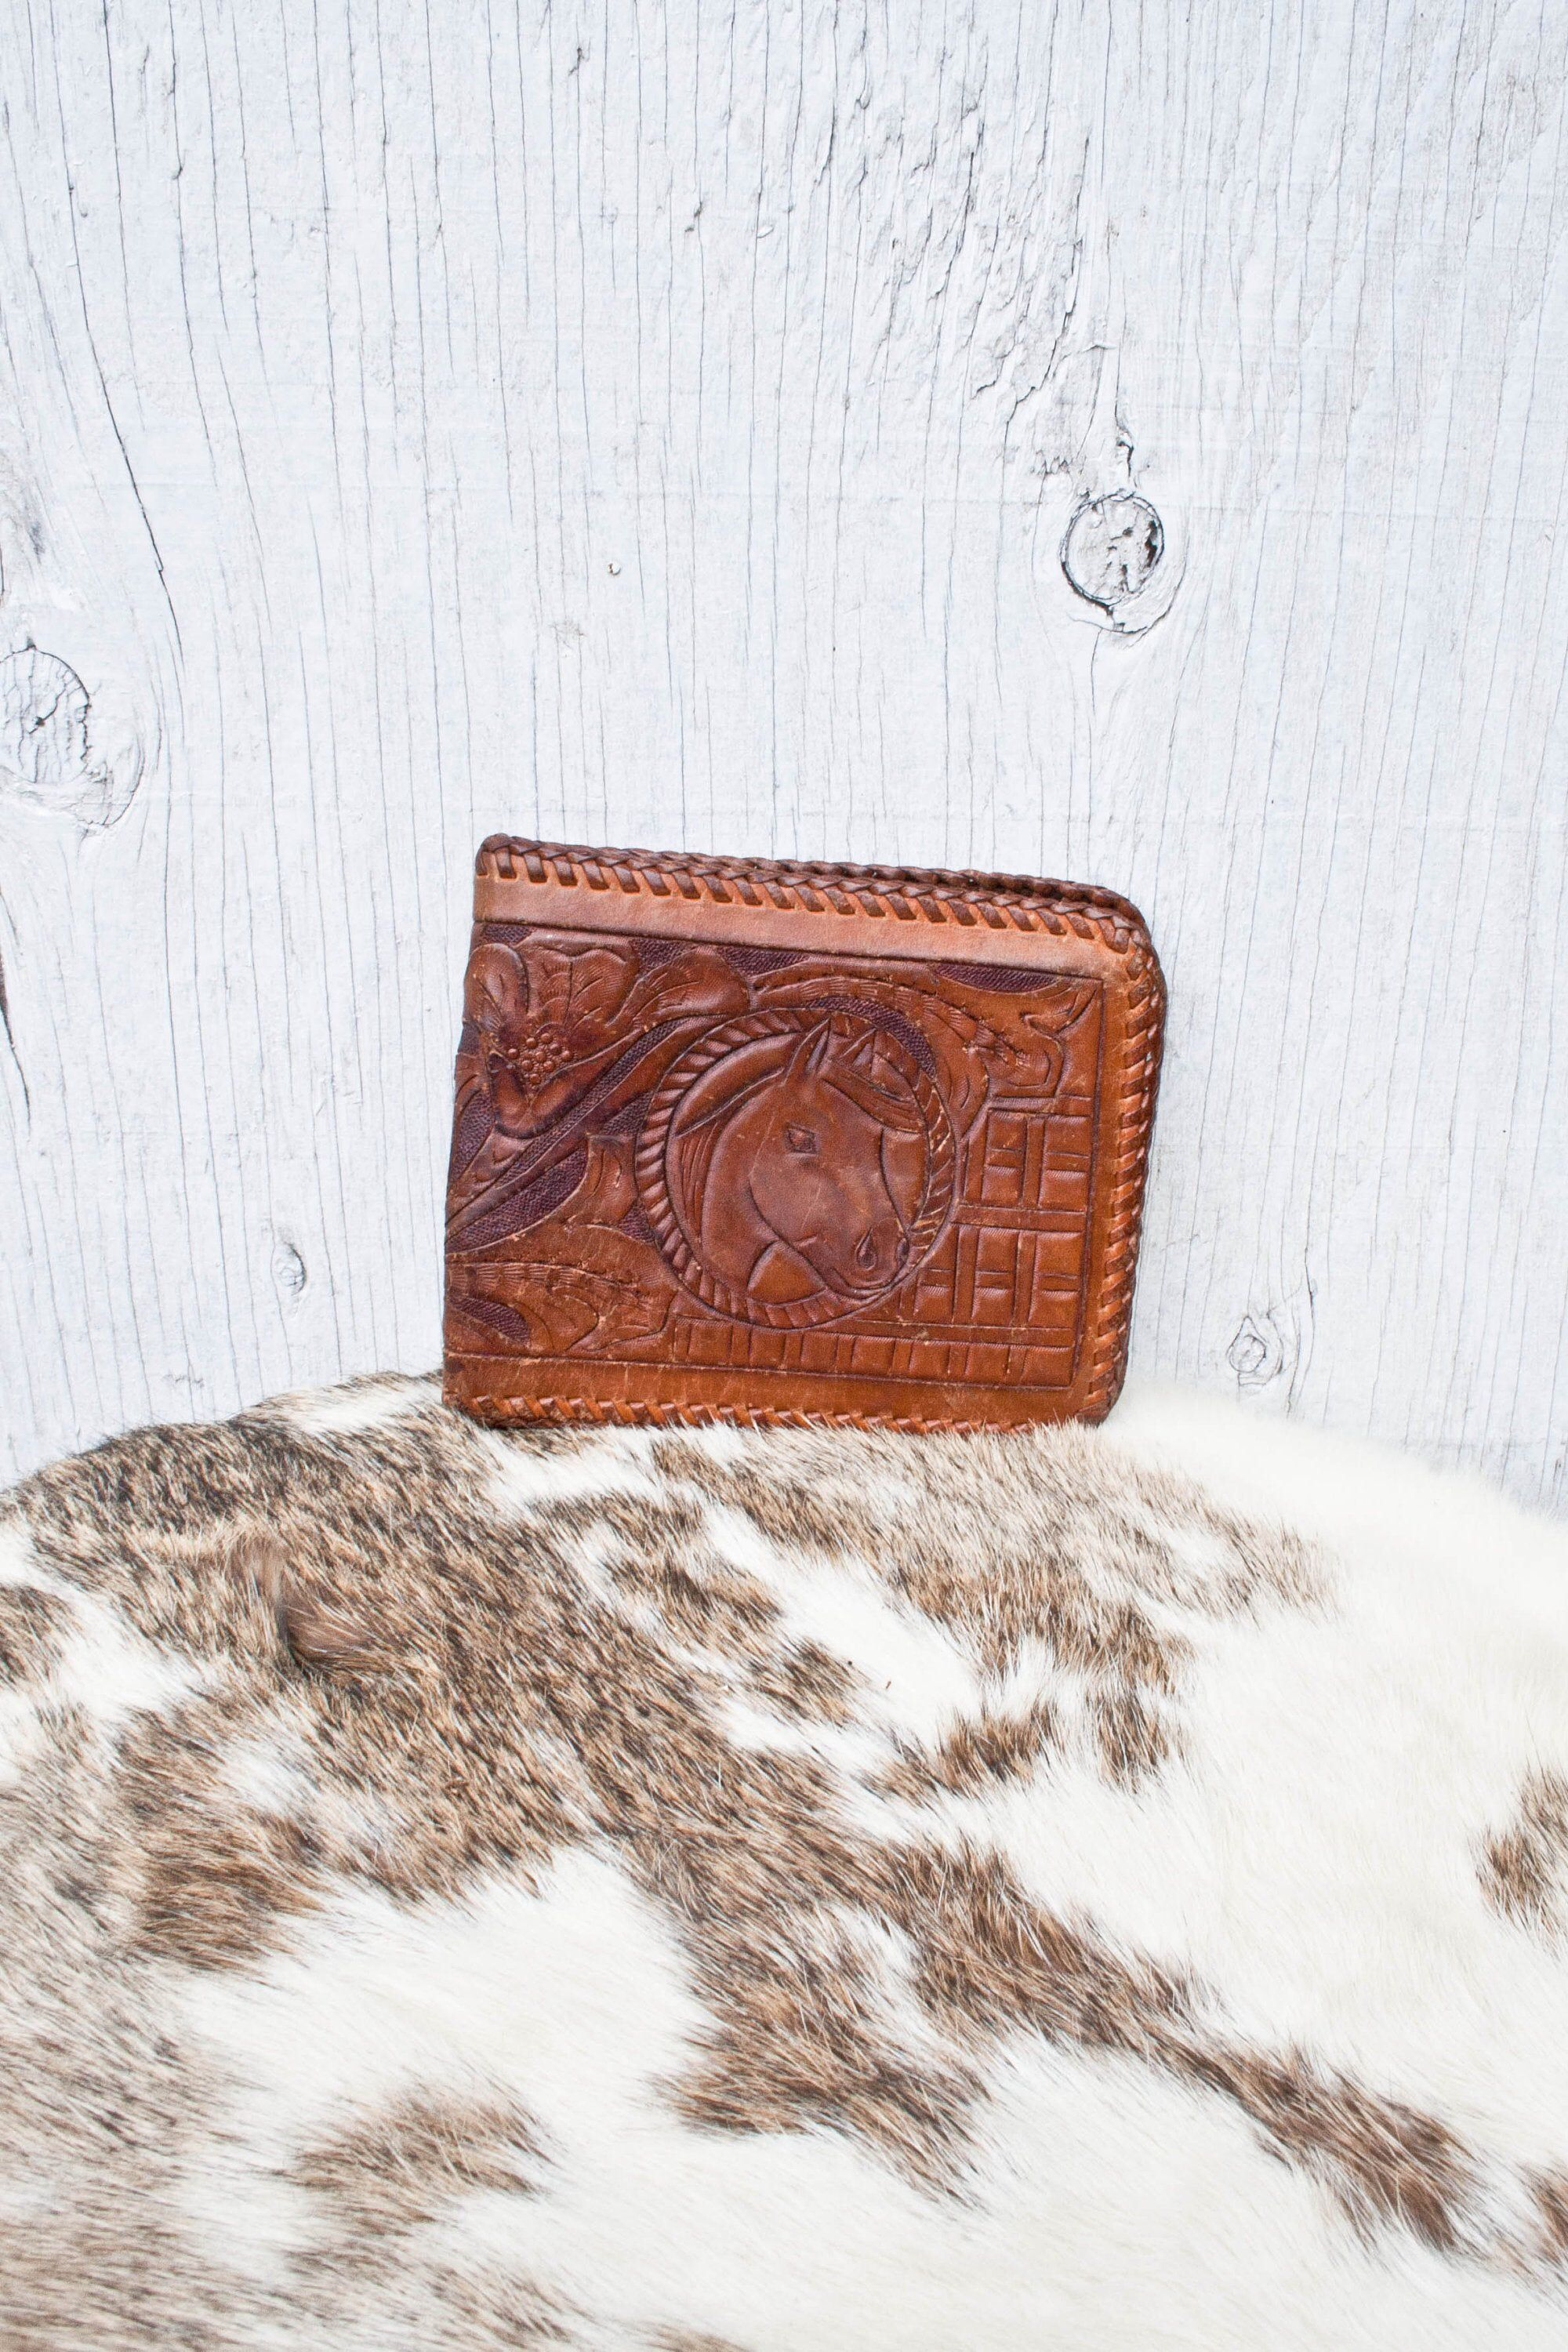 Tooled Leather Wallet - Mexico Hand Tooled Floral and Horse Wallet - 70s - Flower and Horse Pattern Softened Leather